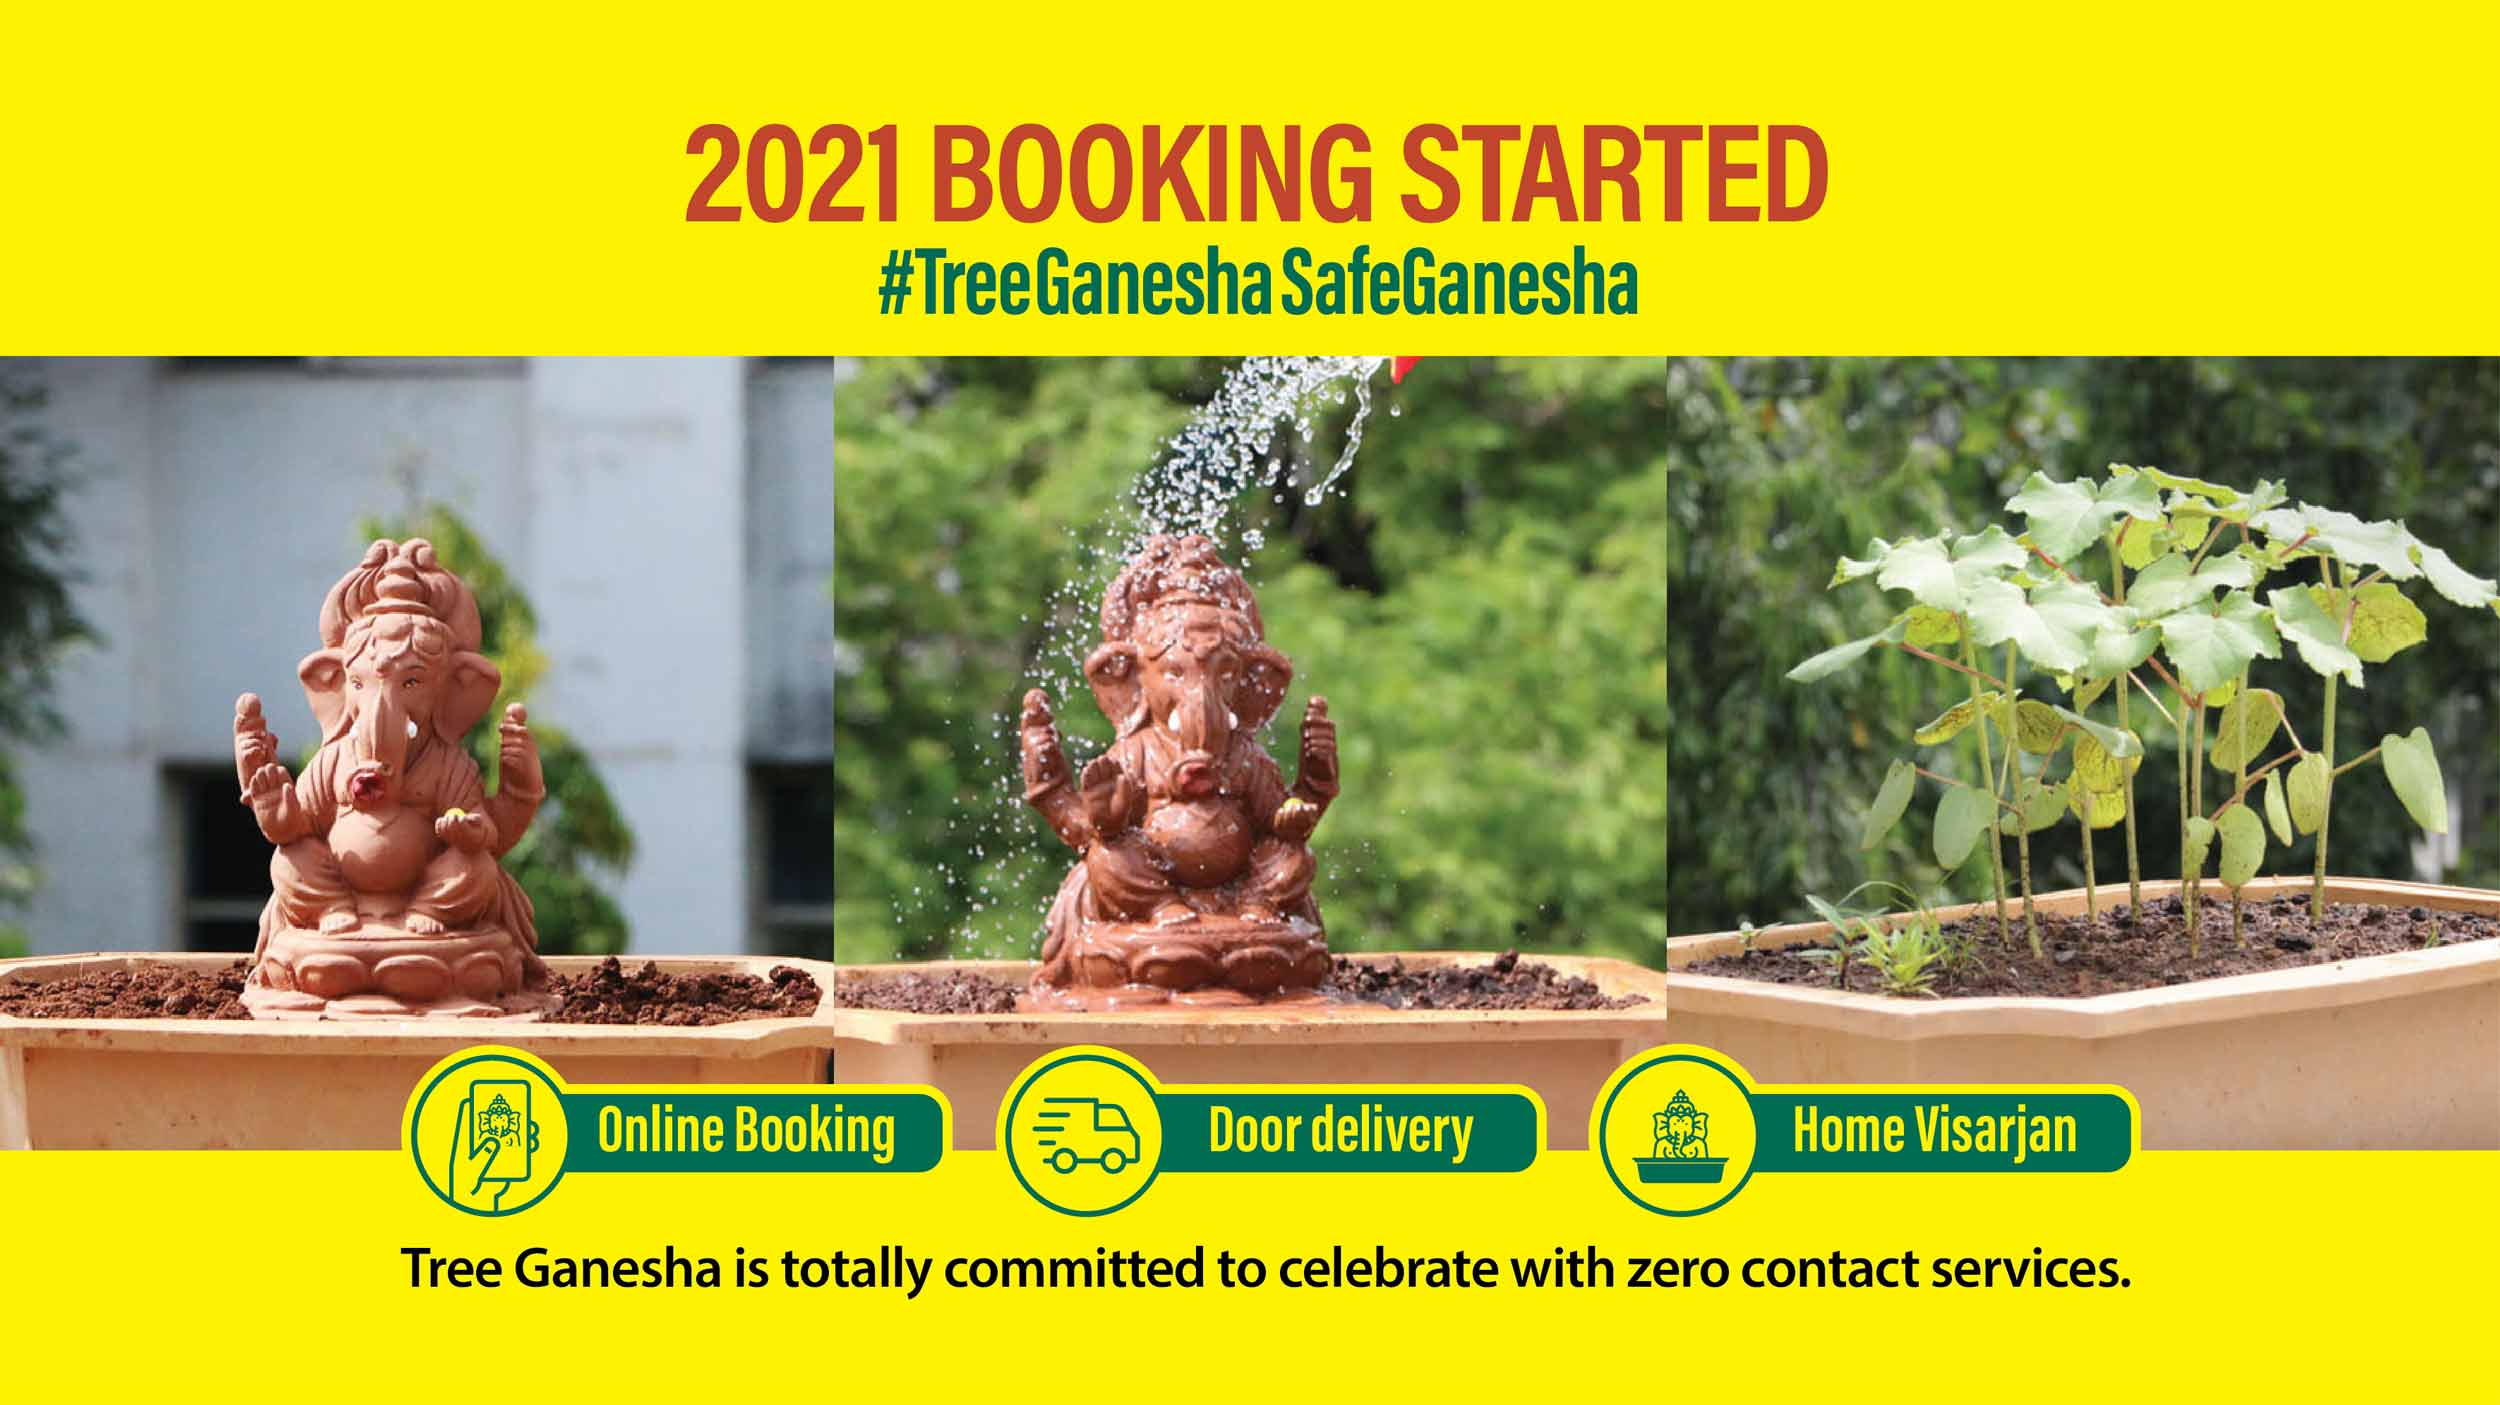 2021 Booking started form